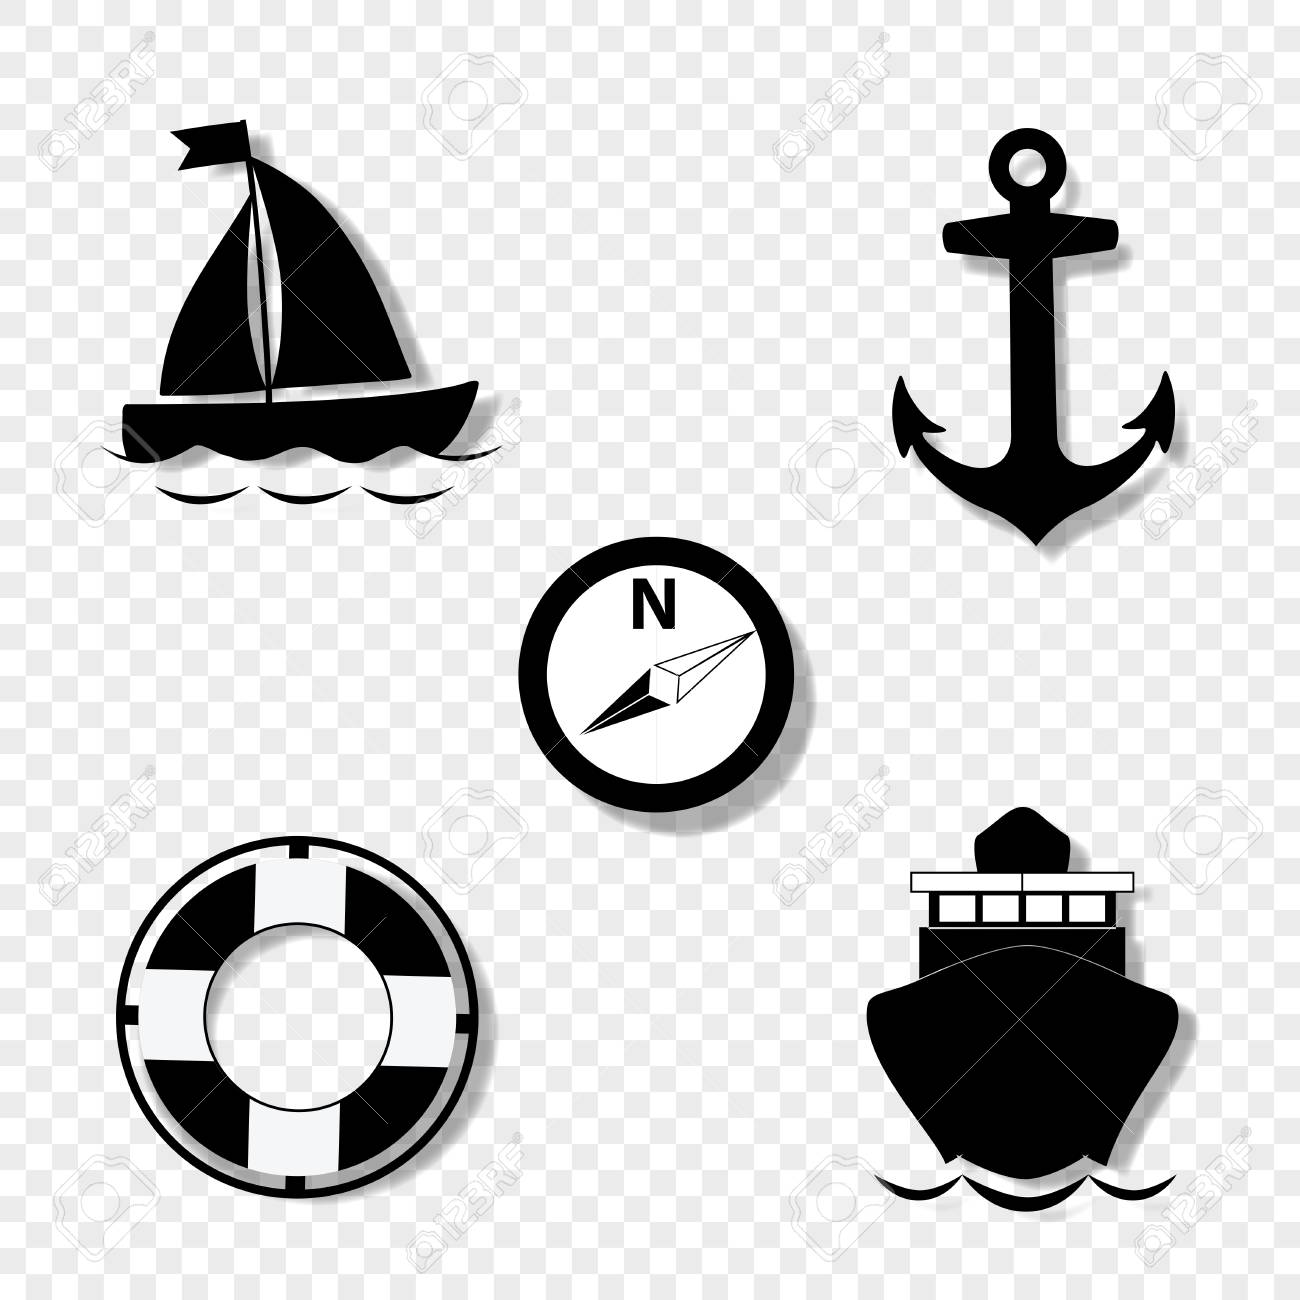 Vector black and white silhouette illustration of summer travel sea icon set isolated on transparent background. sailing ship, anchor, compass, lifebuoy, yacht. Cruise icons set for graphic web design - 104841696